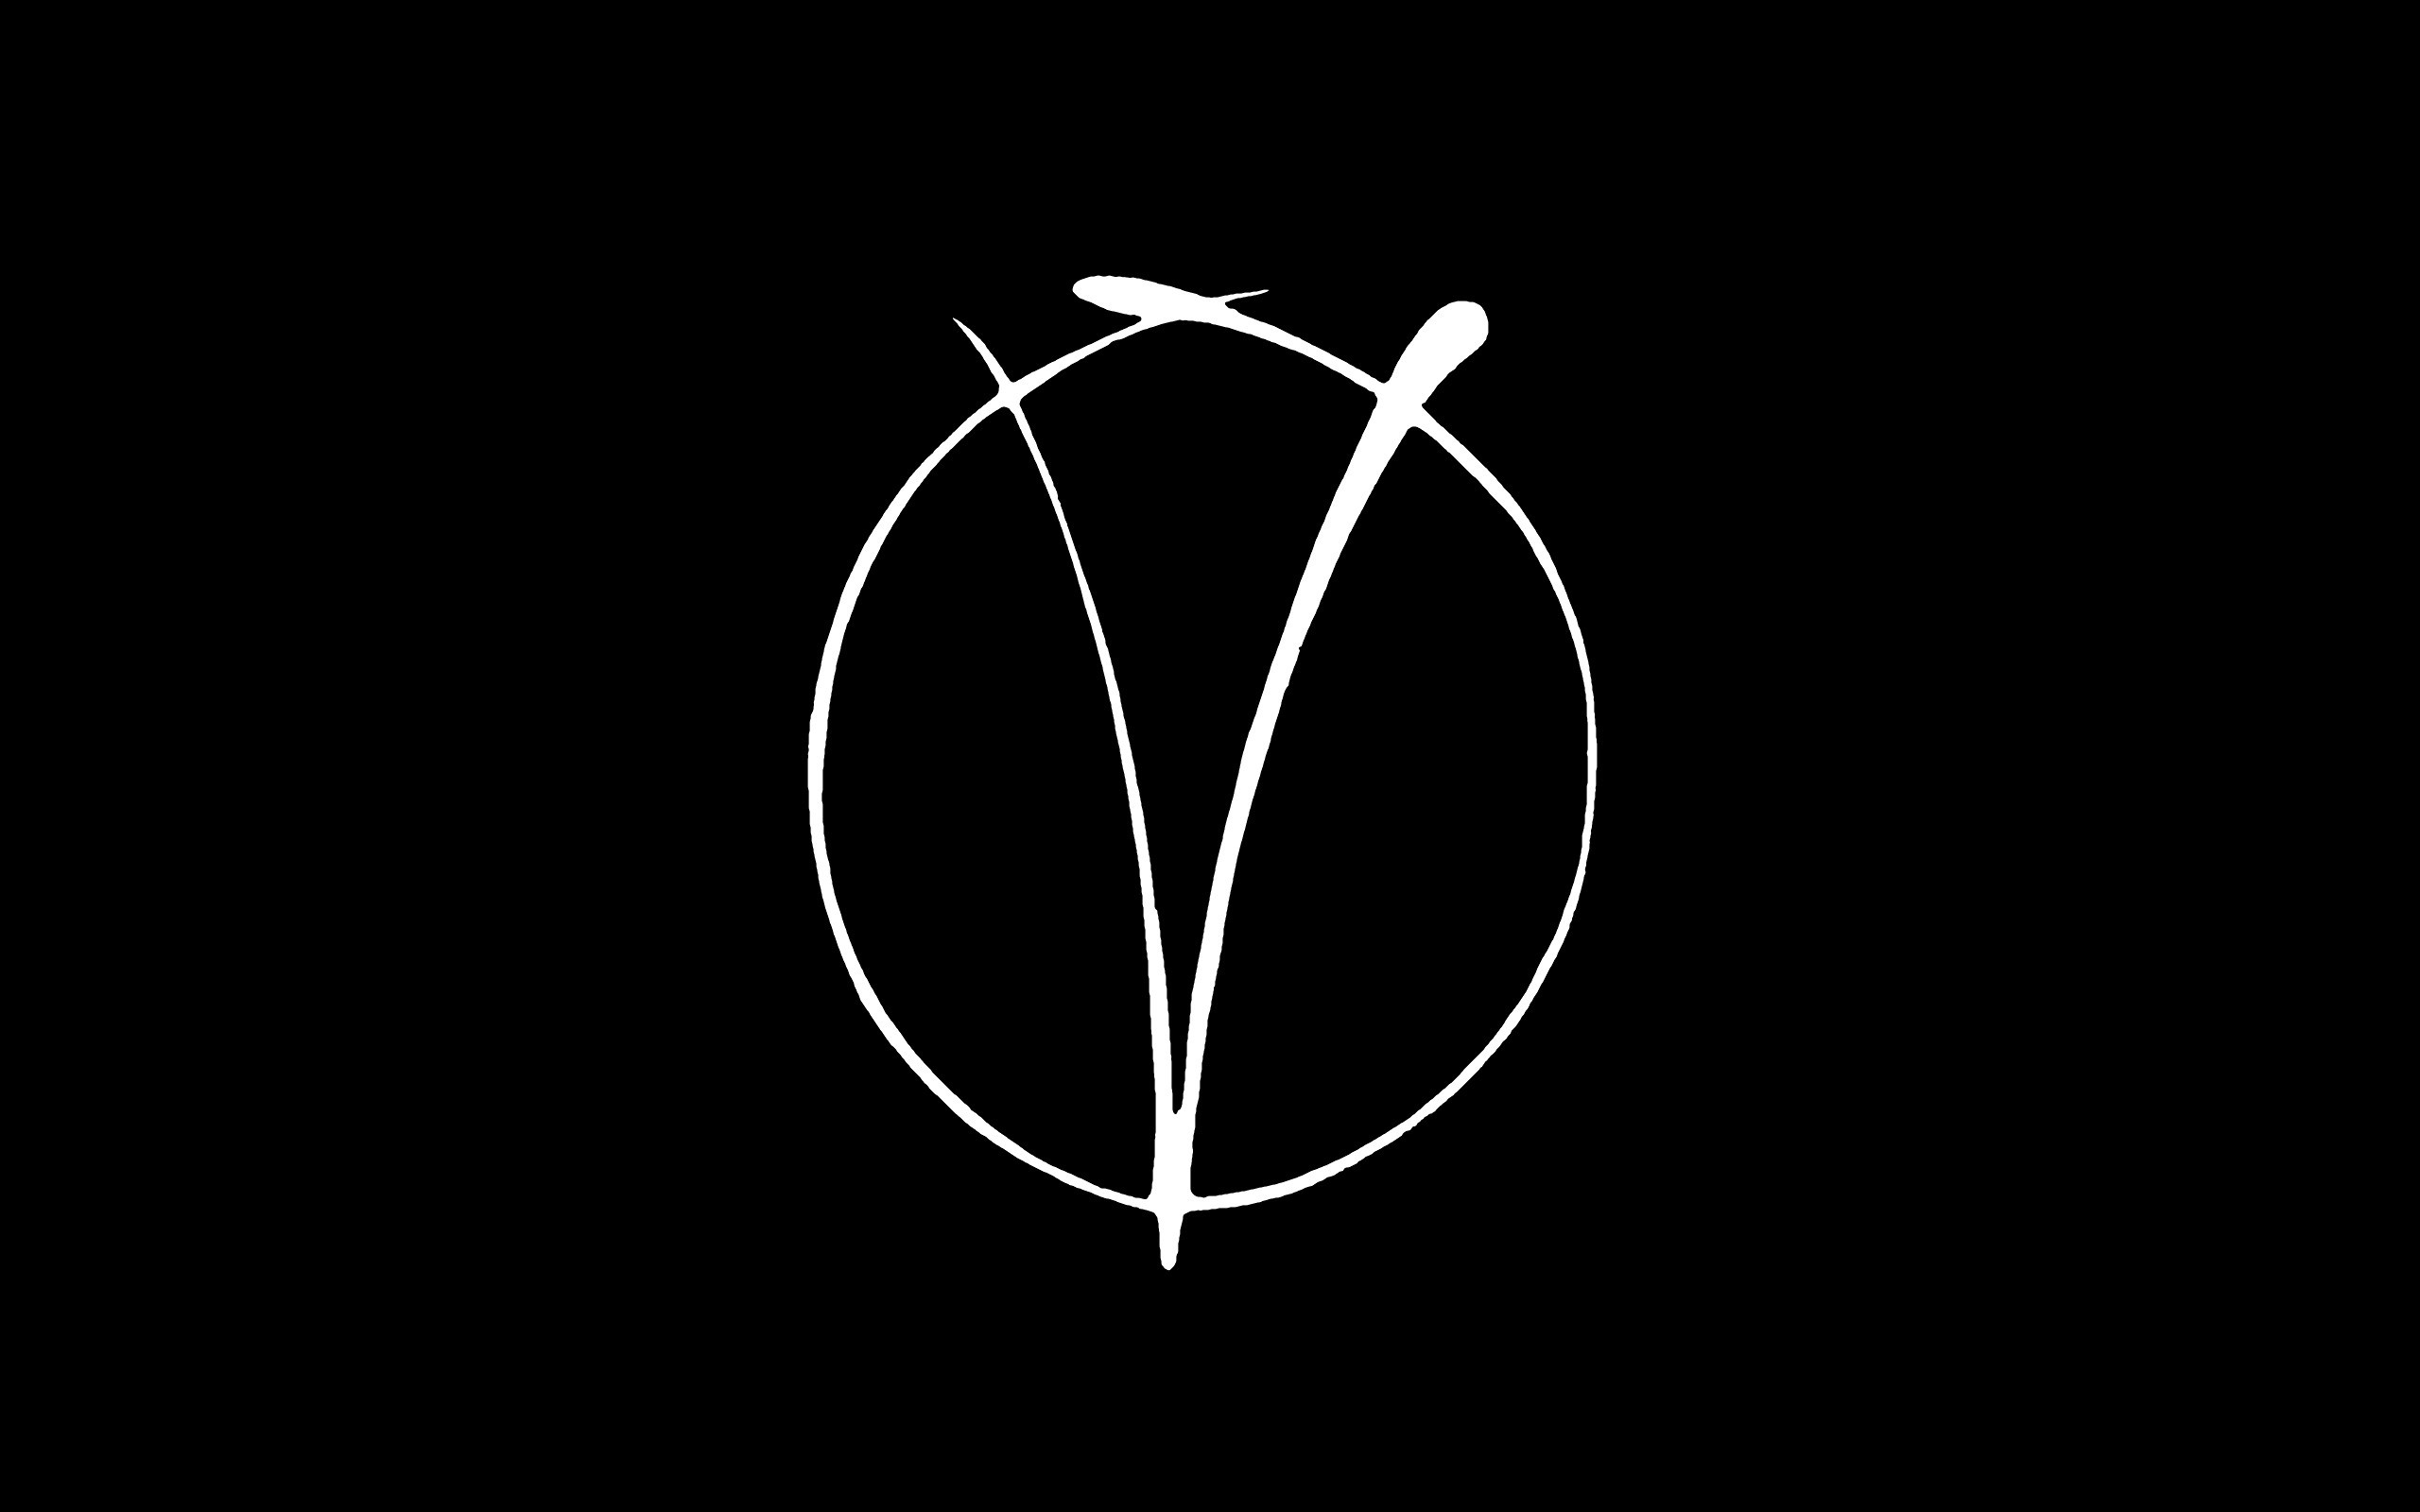 Iphone 5 Hd Wallpapers Cars V For Vendetta Minimalism Black White Logo Movies